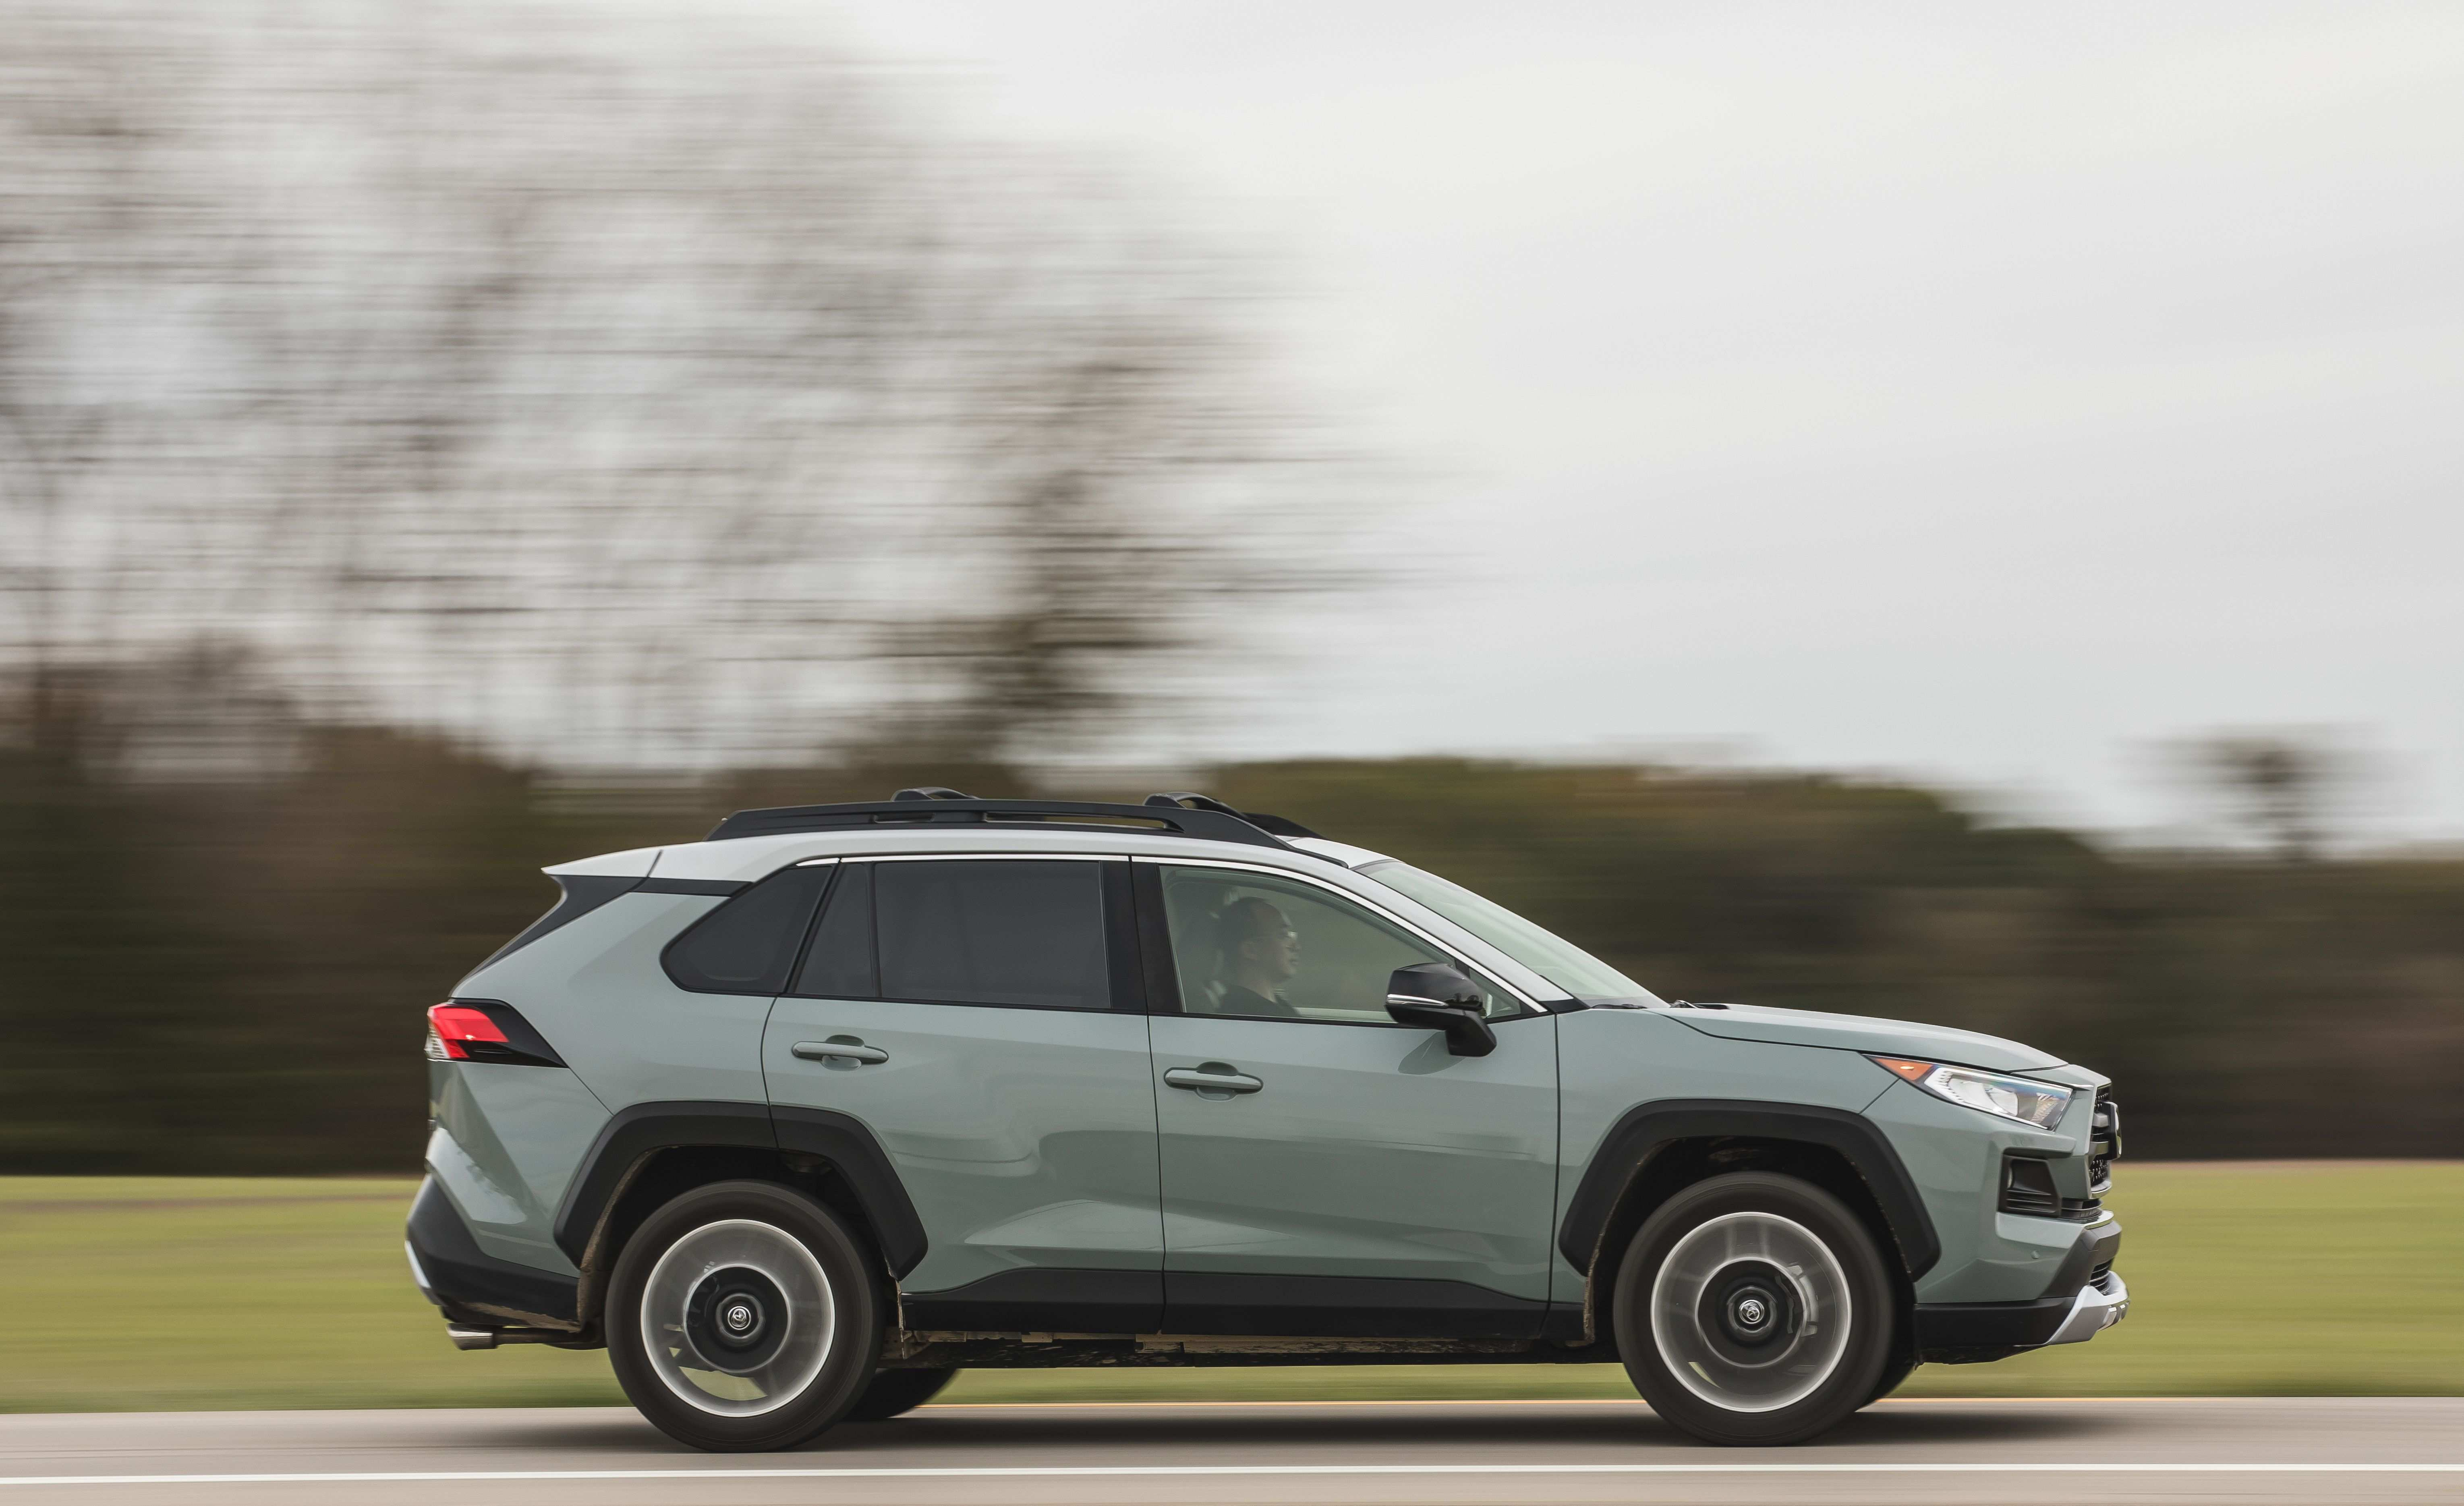 54 New Best Toyota Rav4 Hybrid 2019 Specs And Review Configurations with Best Toyota Rav4 Hybrid 2019 Specs And Review